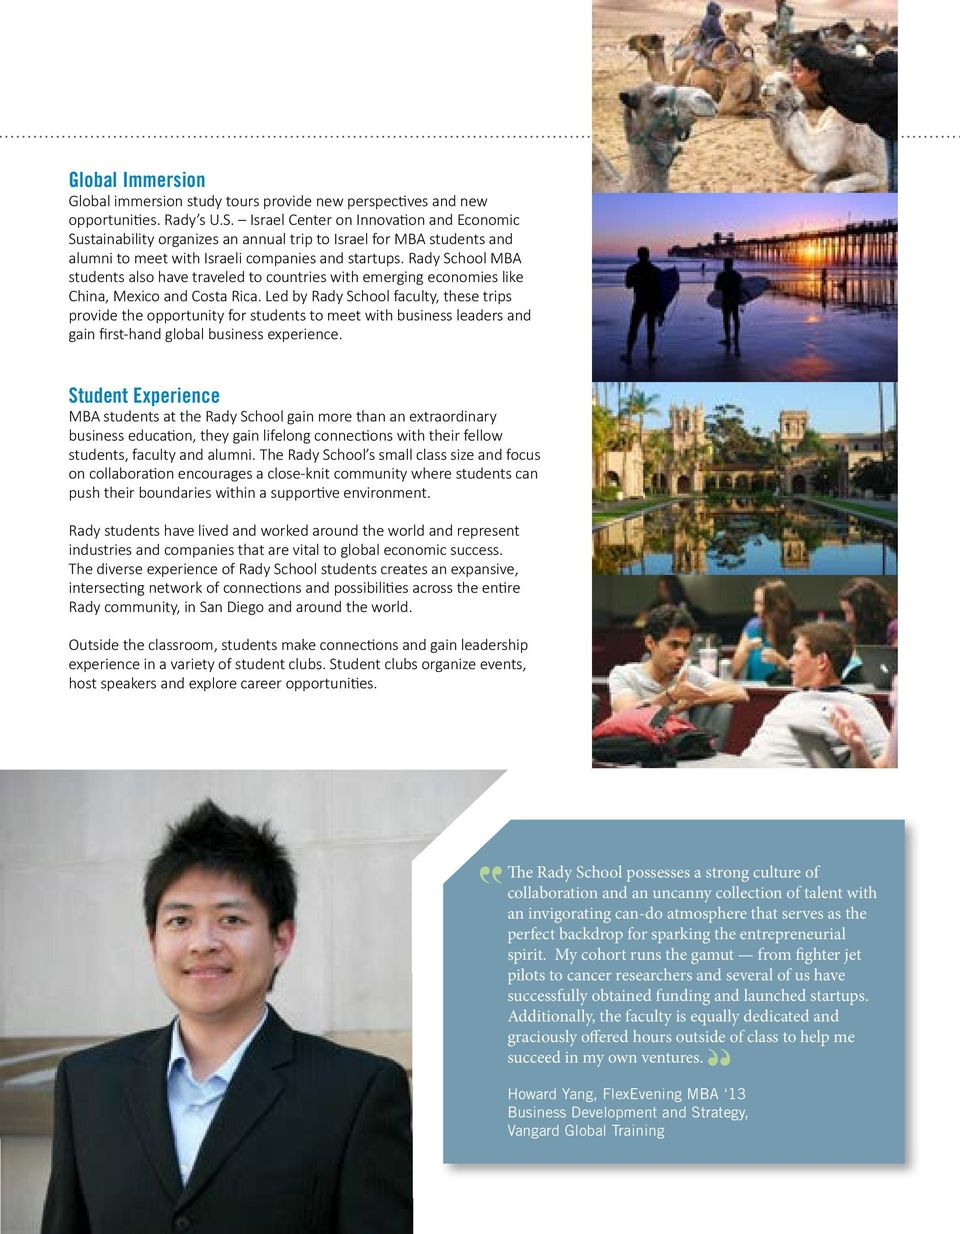 Rady School MBA students also have traveled to countries with emerging economies like China, Mexico and Costa Rica.